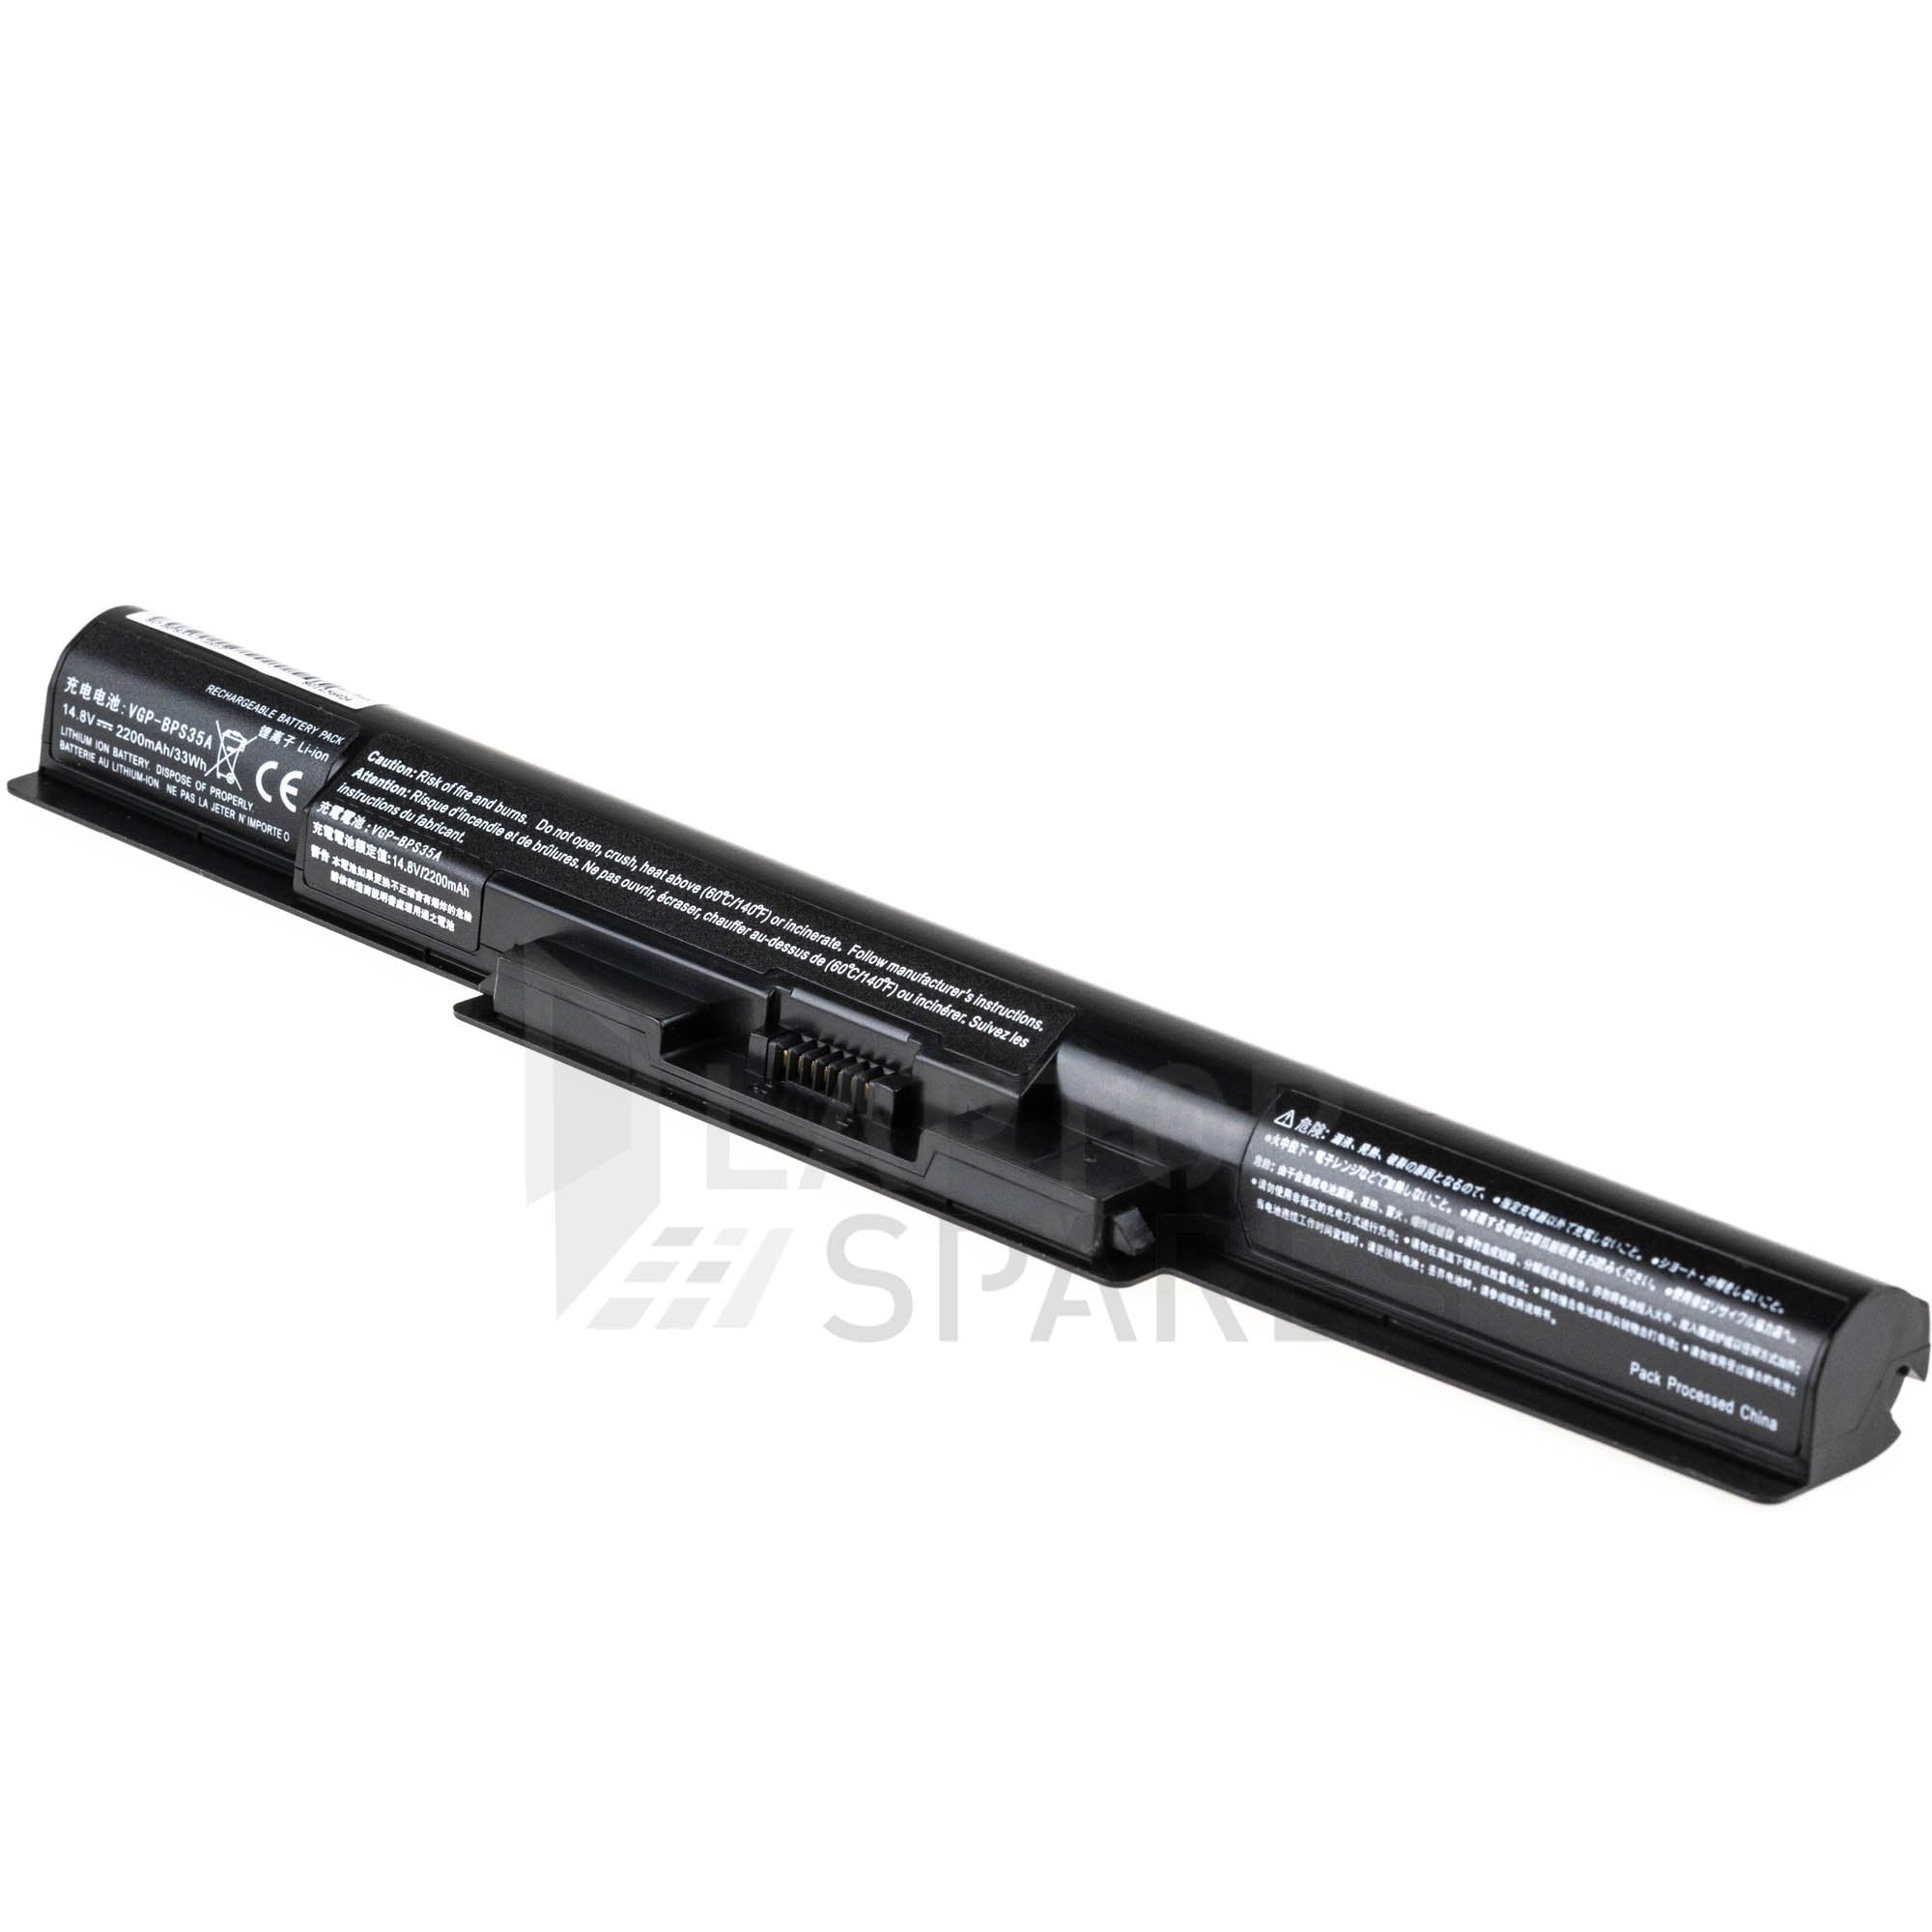 Sony Vaio SVF1531GSG 2200mAh 4 Cell Battery